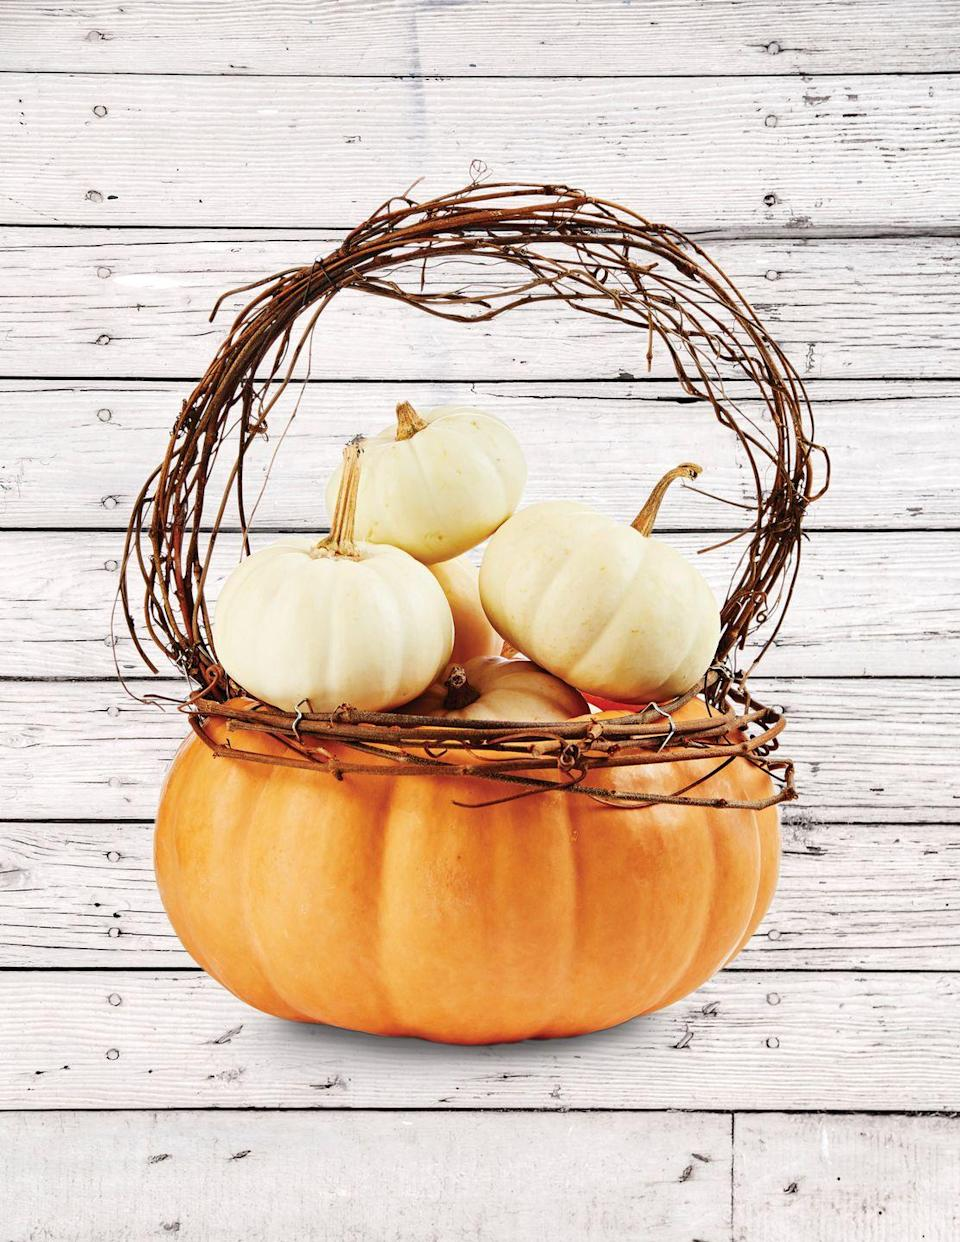 <p>Pumpkins inside pumpkins? It's fall inception, and we're loving every bit of it.</p><p><strong>Make the basket:</strong> Cut off the top quarter of a flat pumpkin (this is a Musquee de Provence variety); scoop out pulp and seeds. Attach lengths of grapevine just below the opening with T-pins. Attach a grapevine handle just inside the opening with T-pins. Nestle mini pumpkins in the basket. </p>